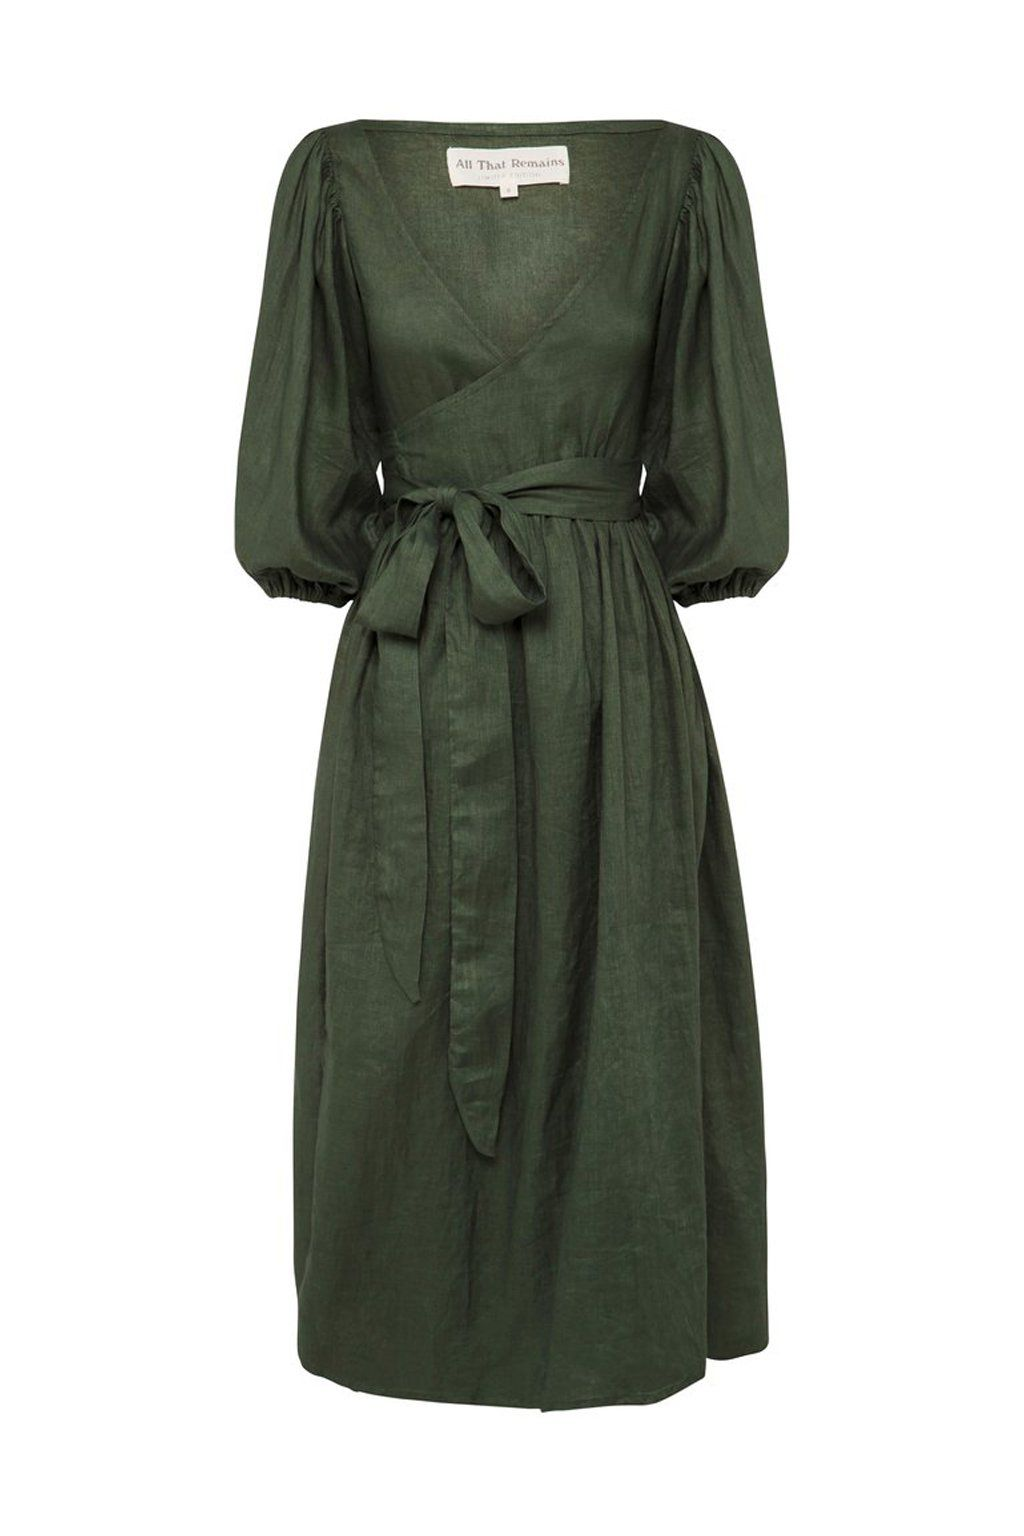 Truly the prefect wrap dress. Effortless and elegant, the Lia features an ideal midi length, deep V neckline, billowy oversized balloon sleeves and an exaggerated waist tie. Each dress is individually handmade by artisans, making yours entirely special and unique. - Fits true to size - Model wears size S - Sizing measurements: XS (AUS 6): Bust - 32